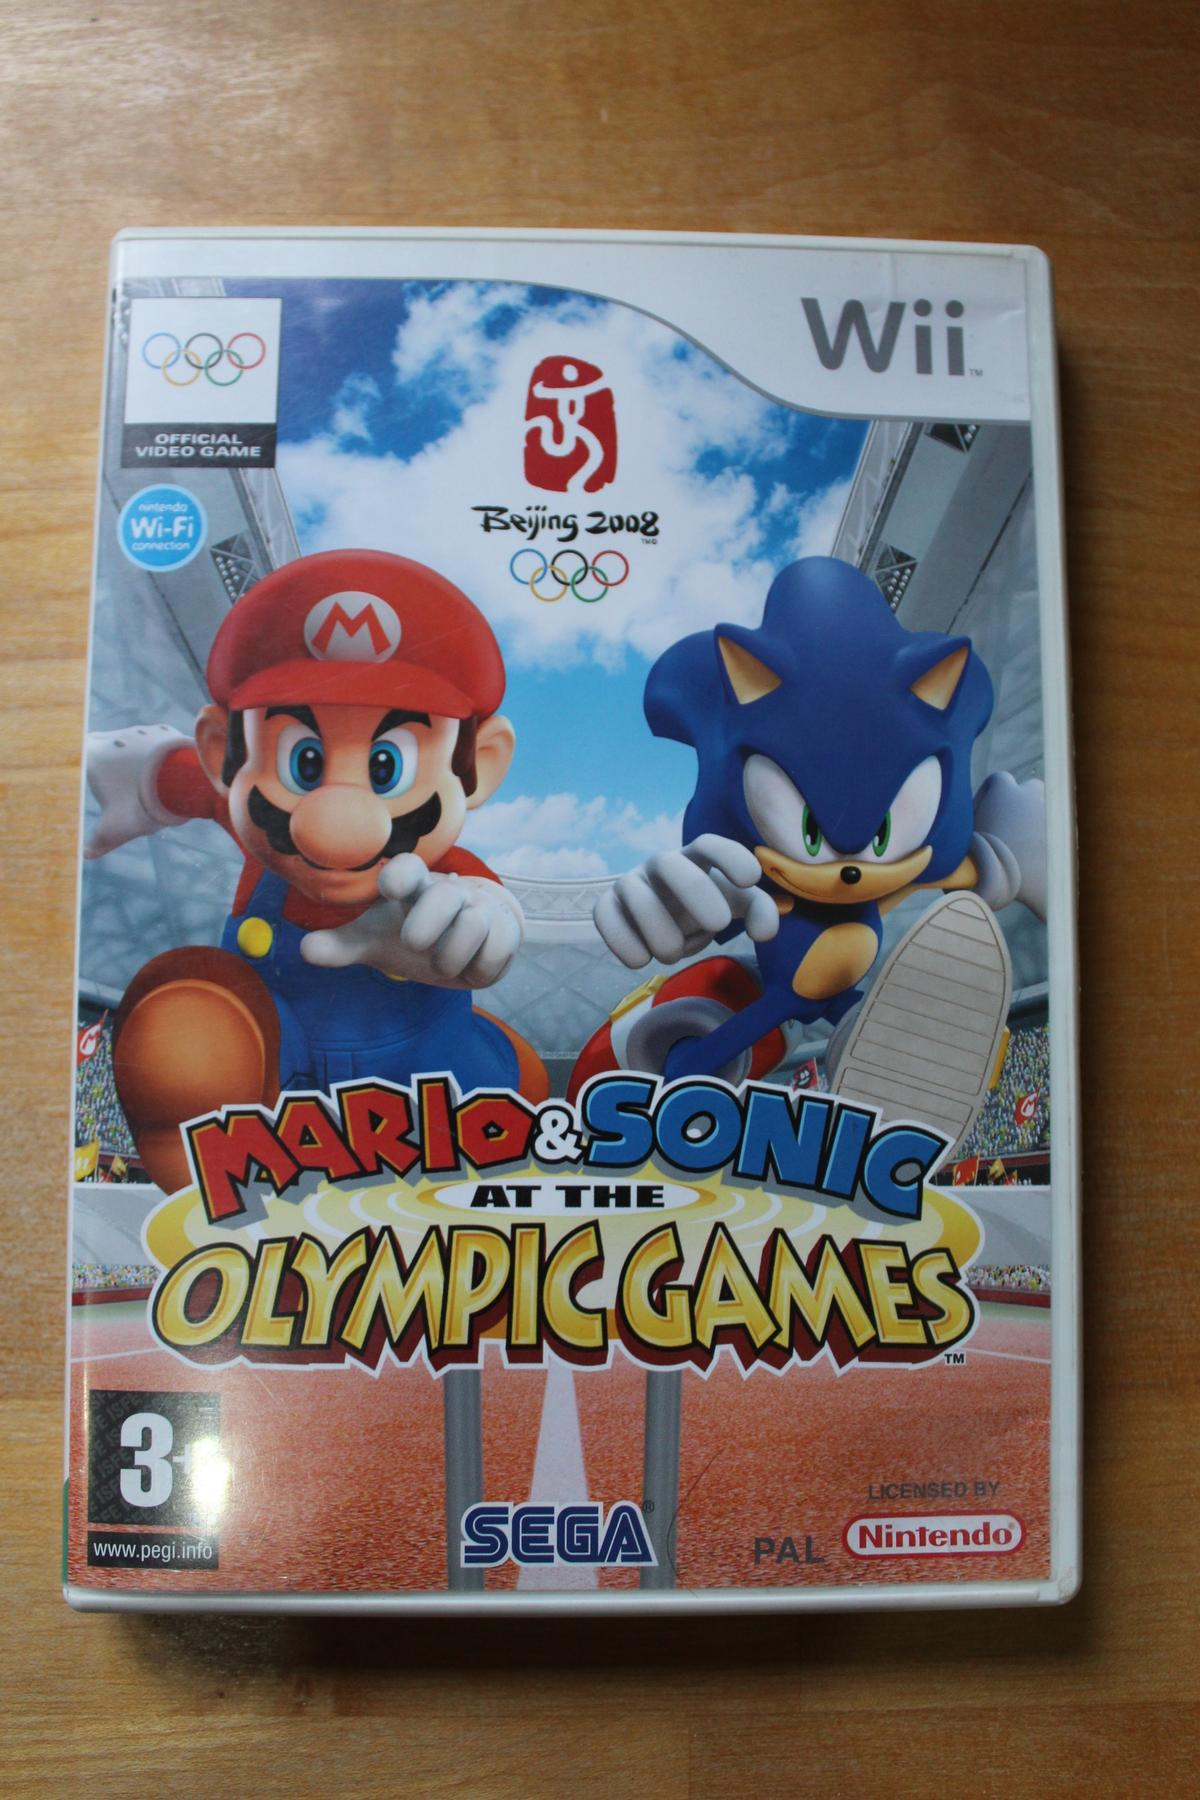 Wii game - Mario & Sonic at the Olympic Games